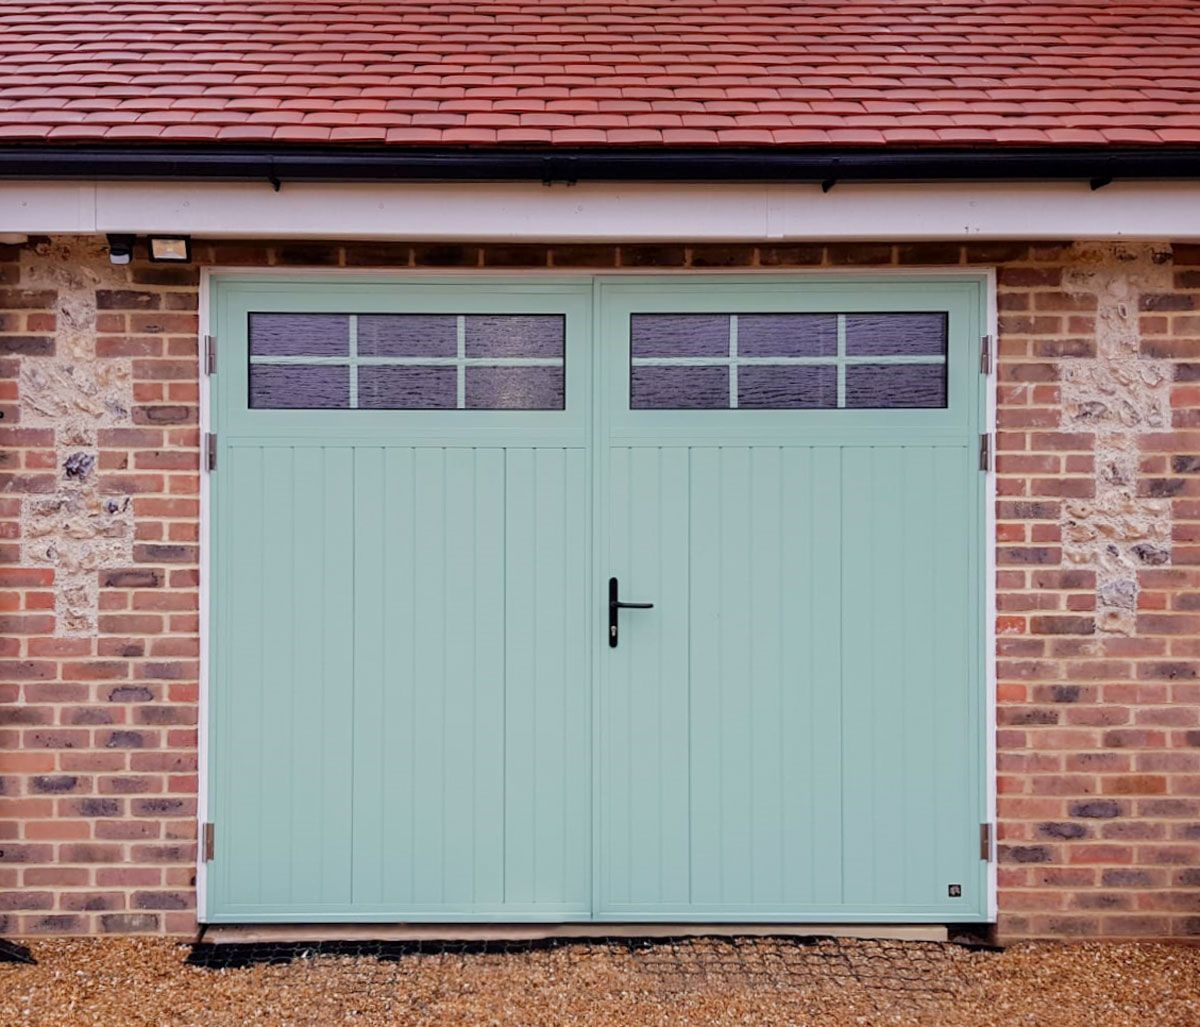 Access Garage Doors Garage Door Repairs Installation Automation Throughout London And South East Side Hinged Garage Doors Garage Doors Garage Door Design